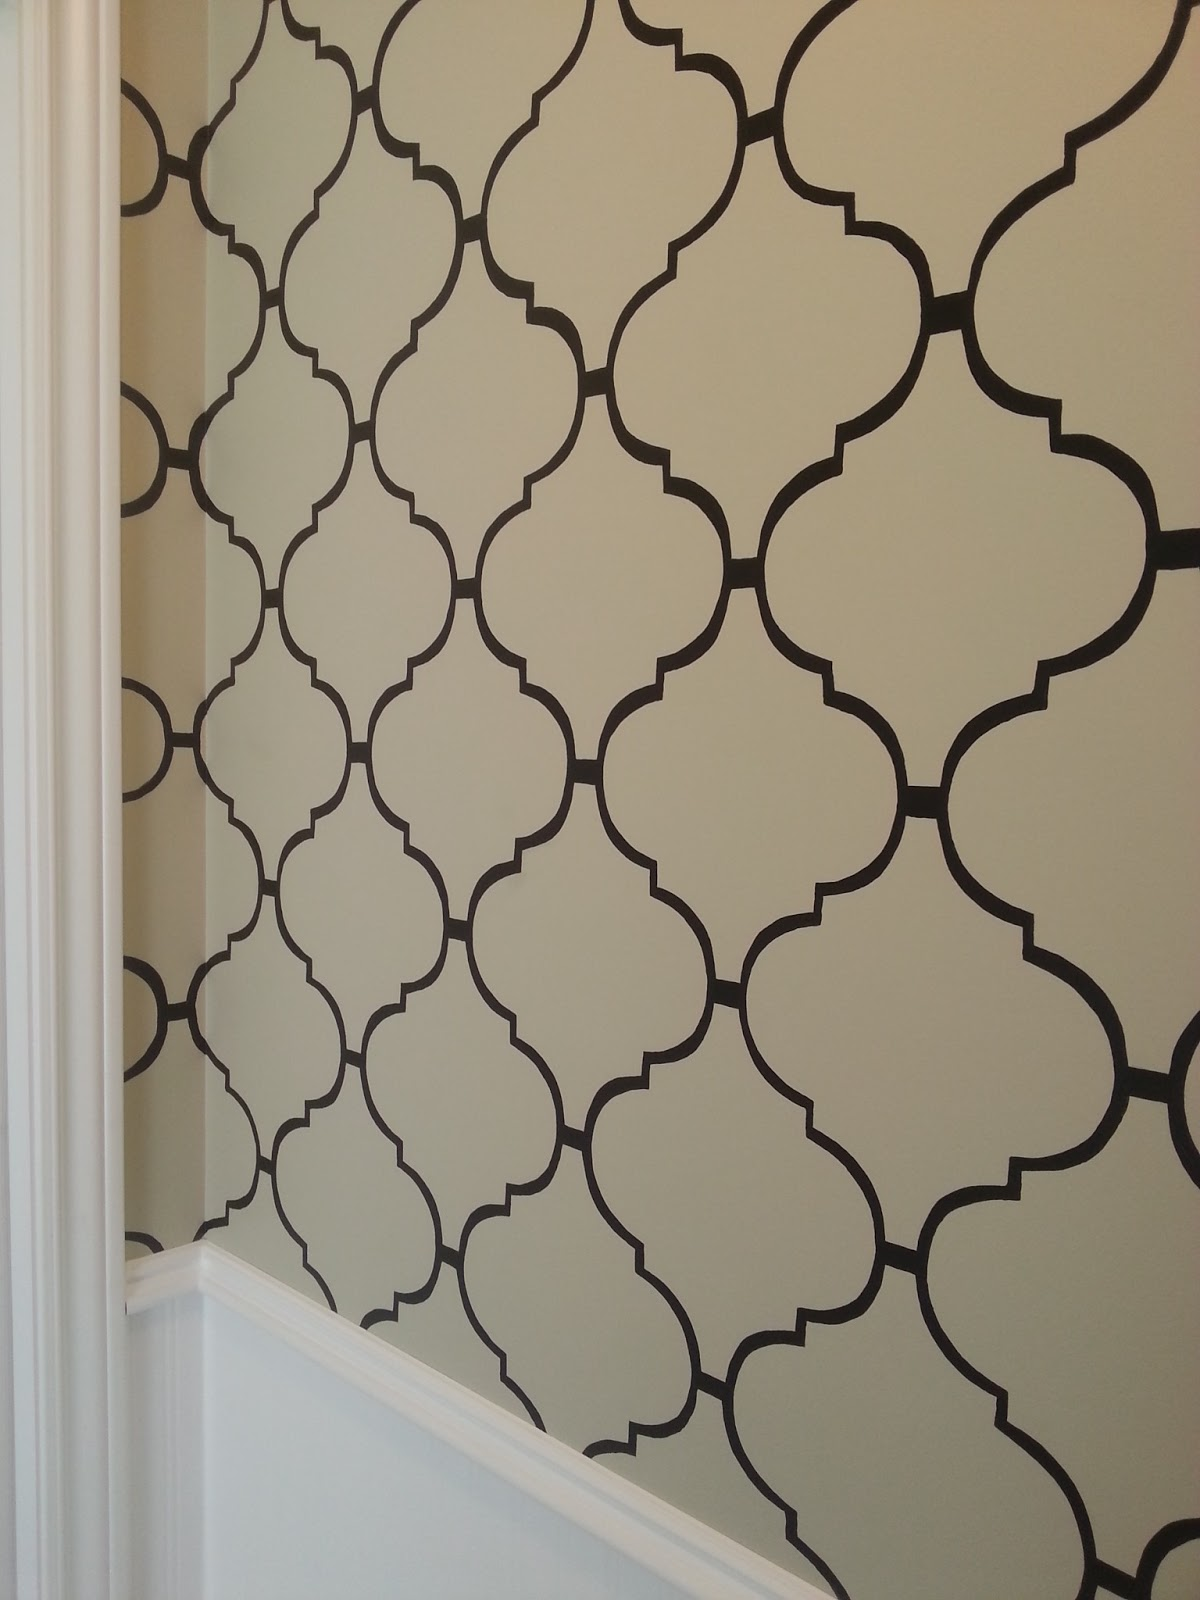 Live from b5 diy moroccan style wall stencil diy moroccan style wall stencil amipublicfo Images